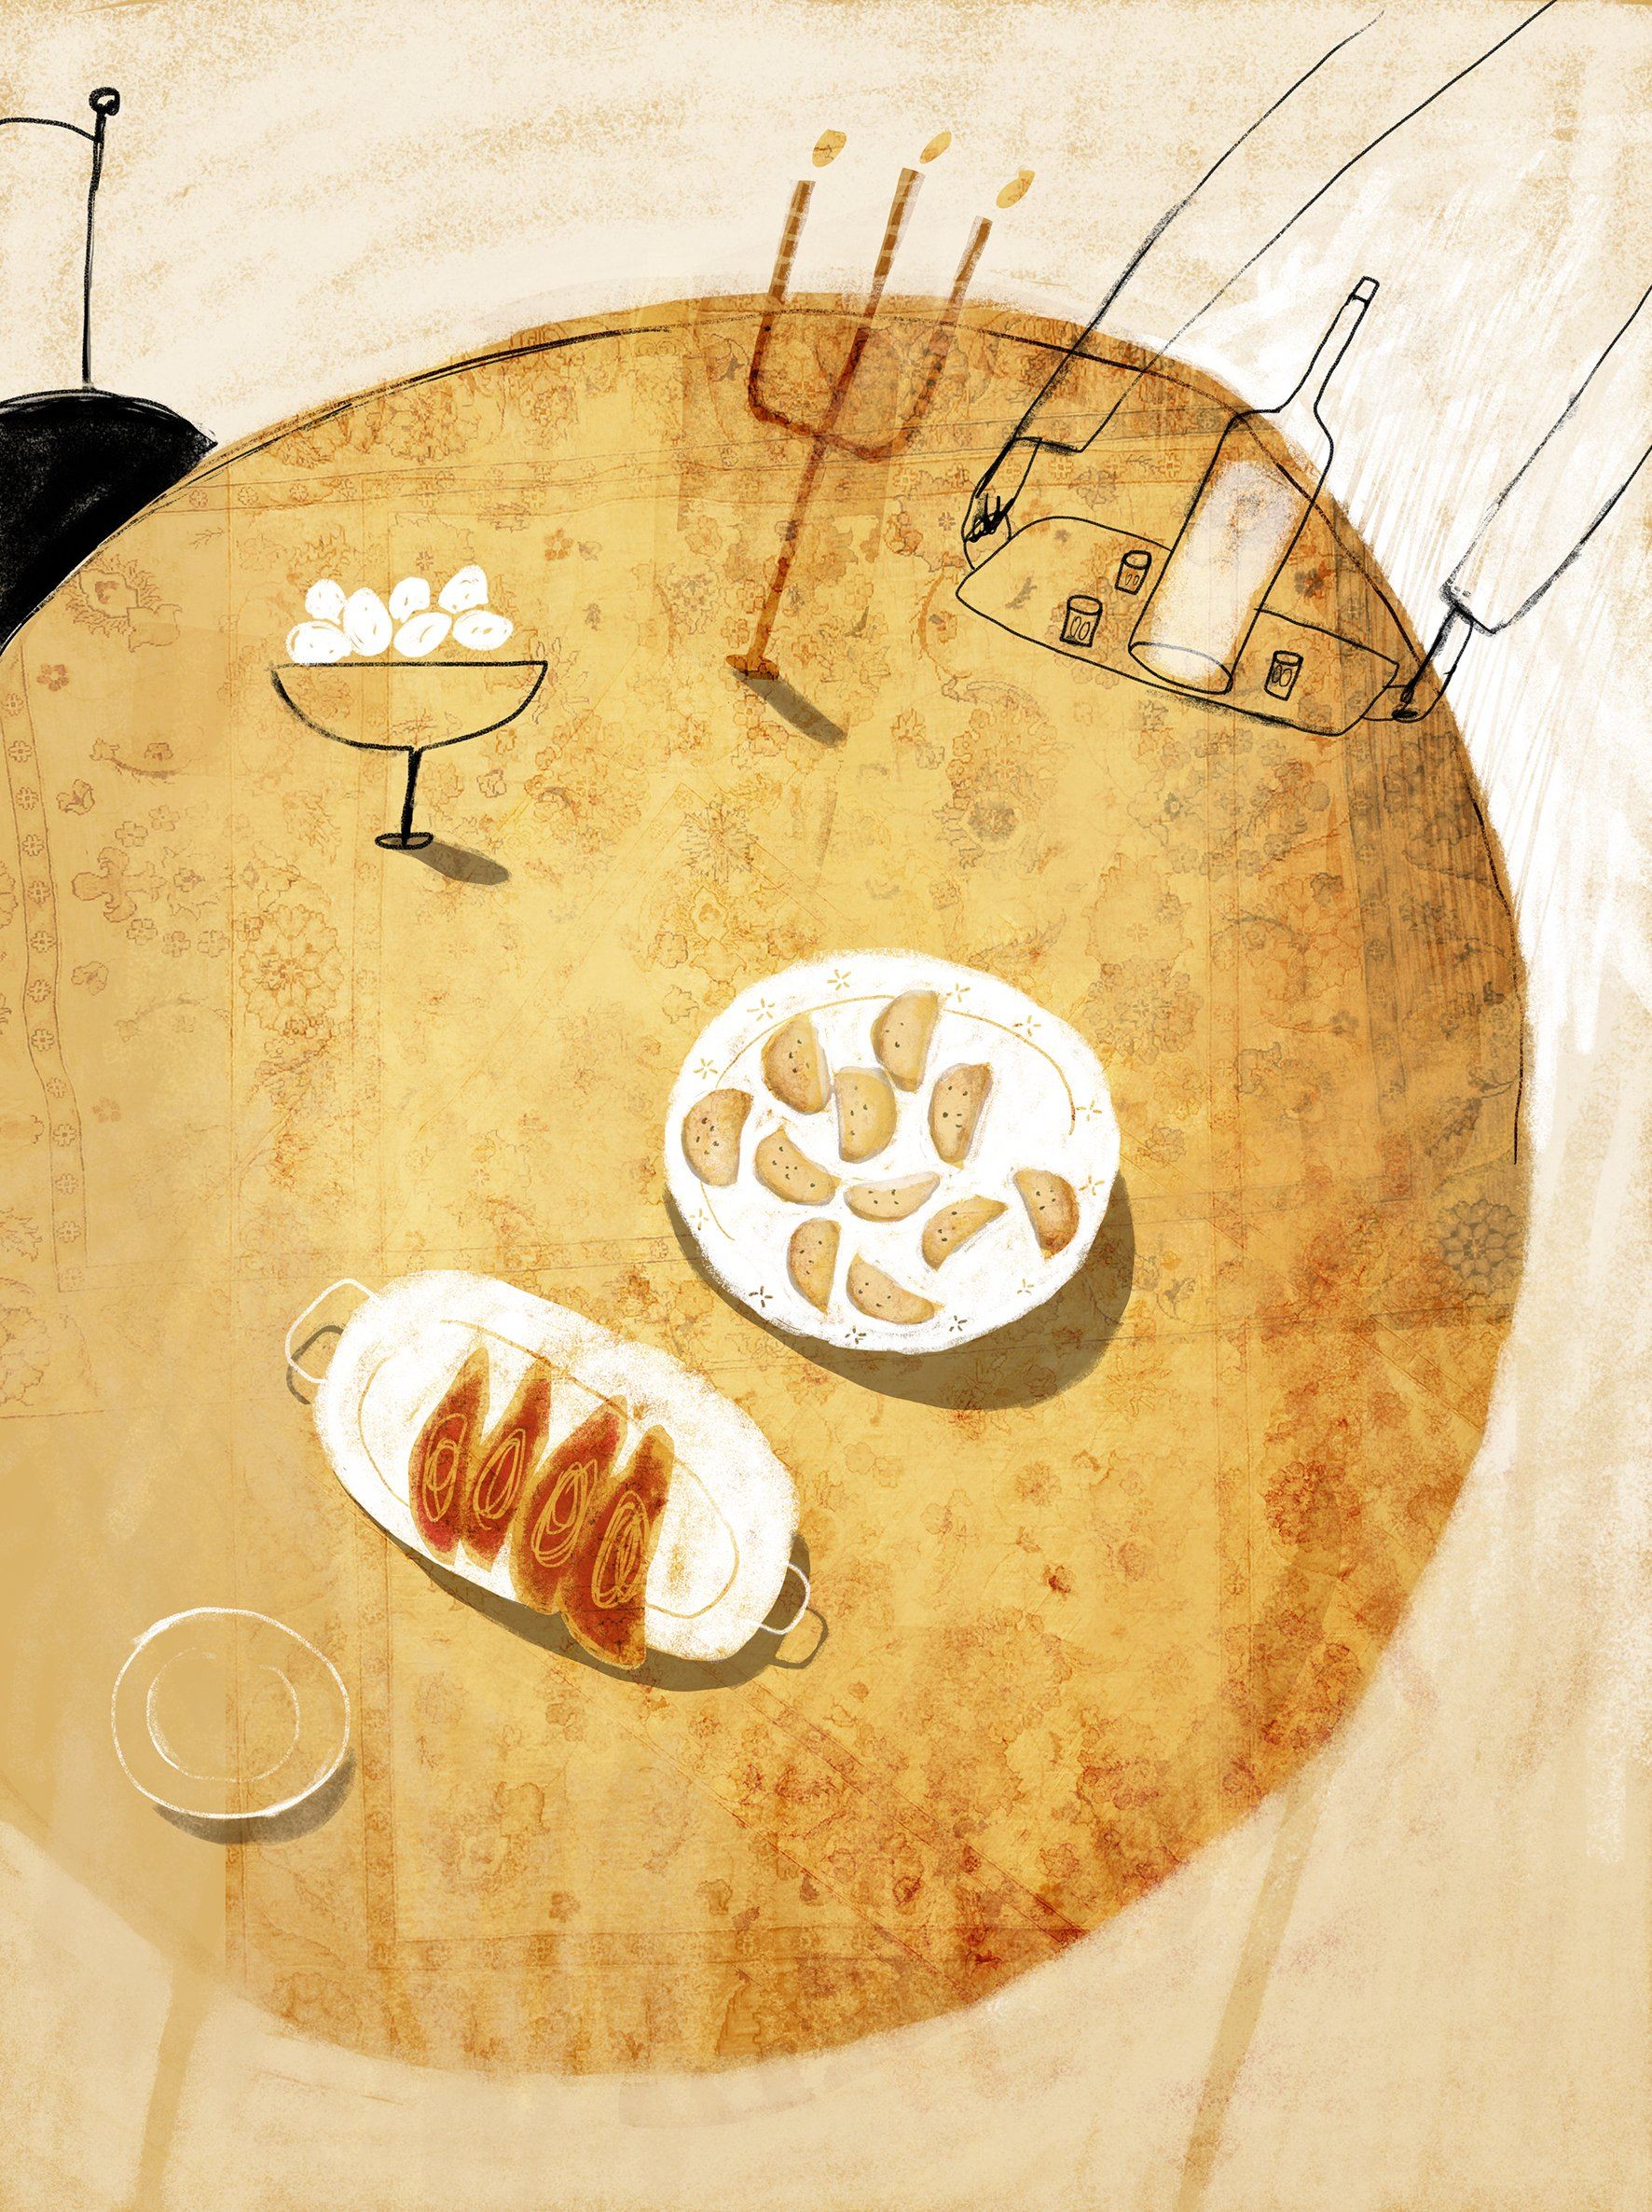 Stylized illustration of showing a large table with plates of borekas, meat, a bowl of eggs, a bottle of wine and a menorah